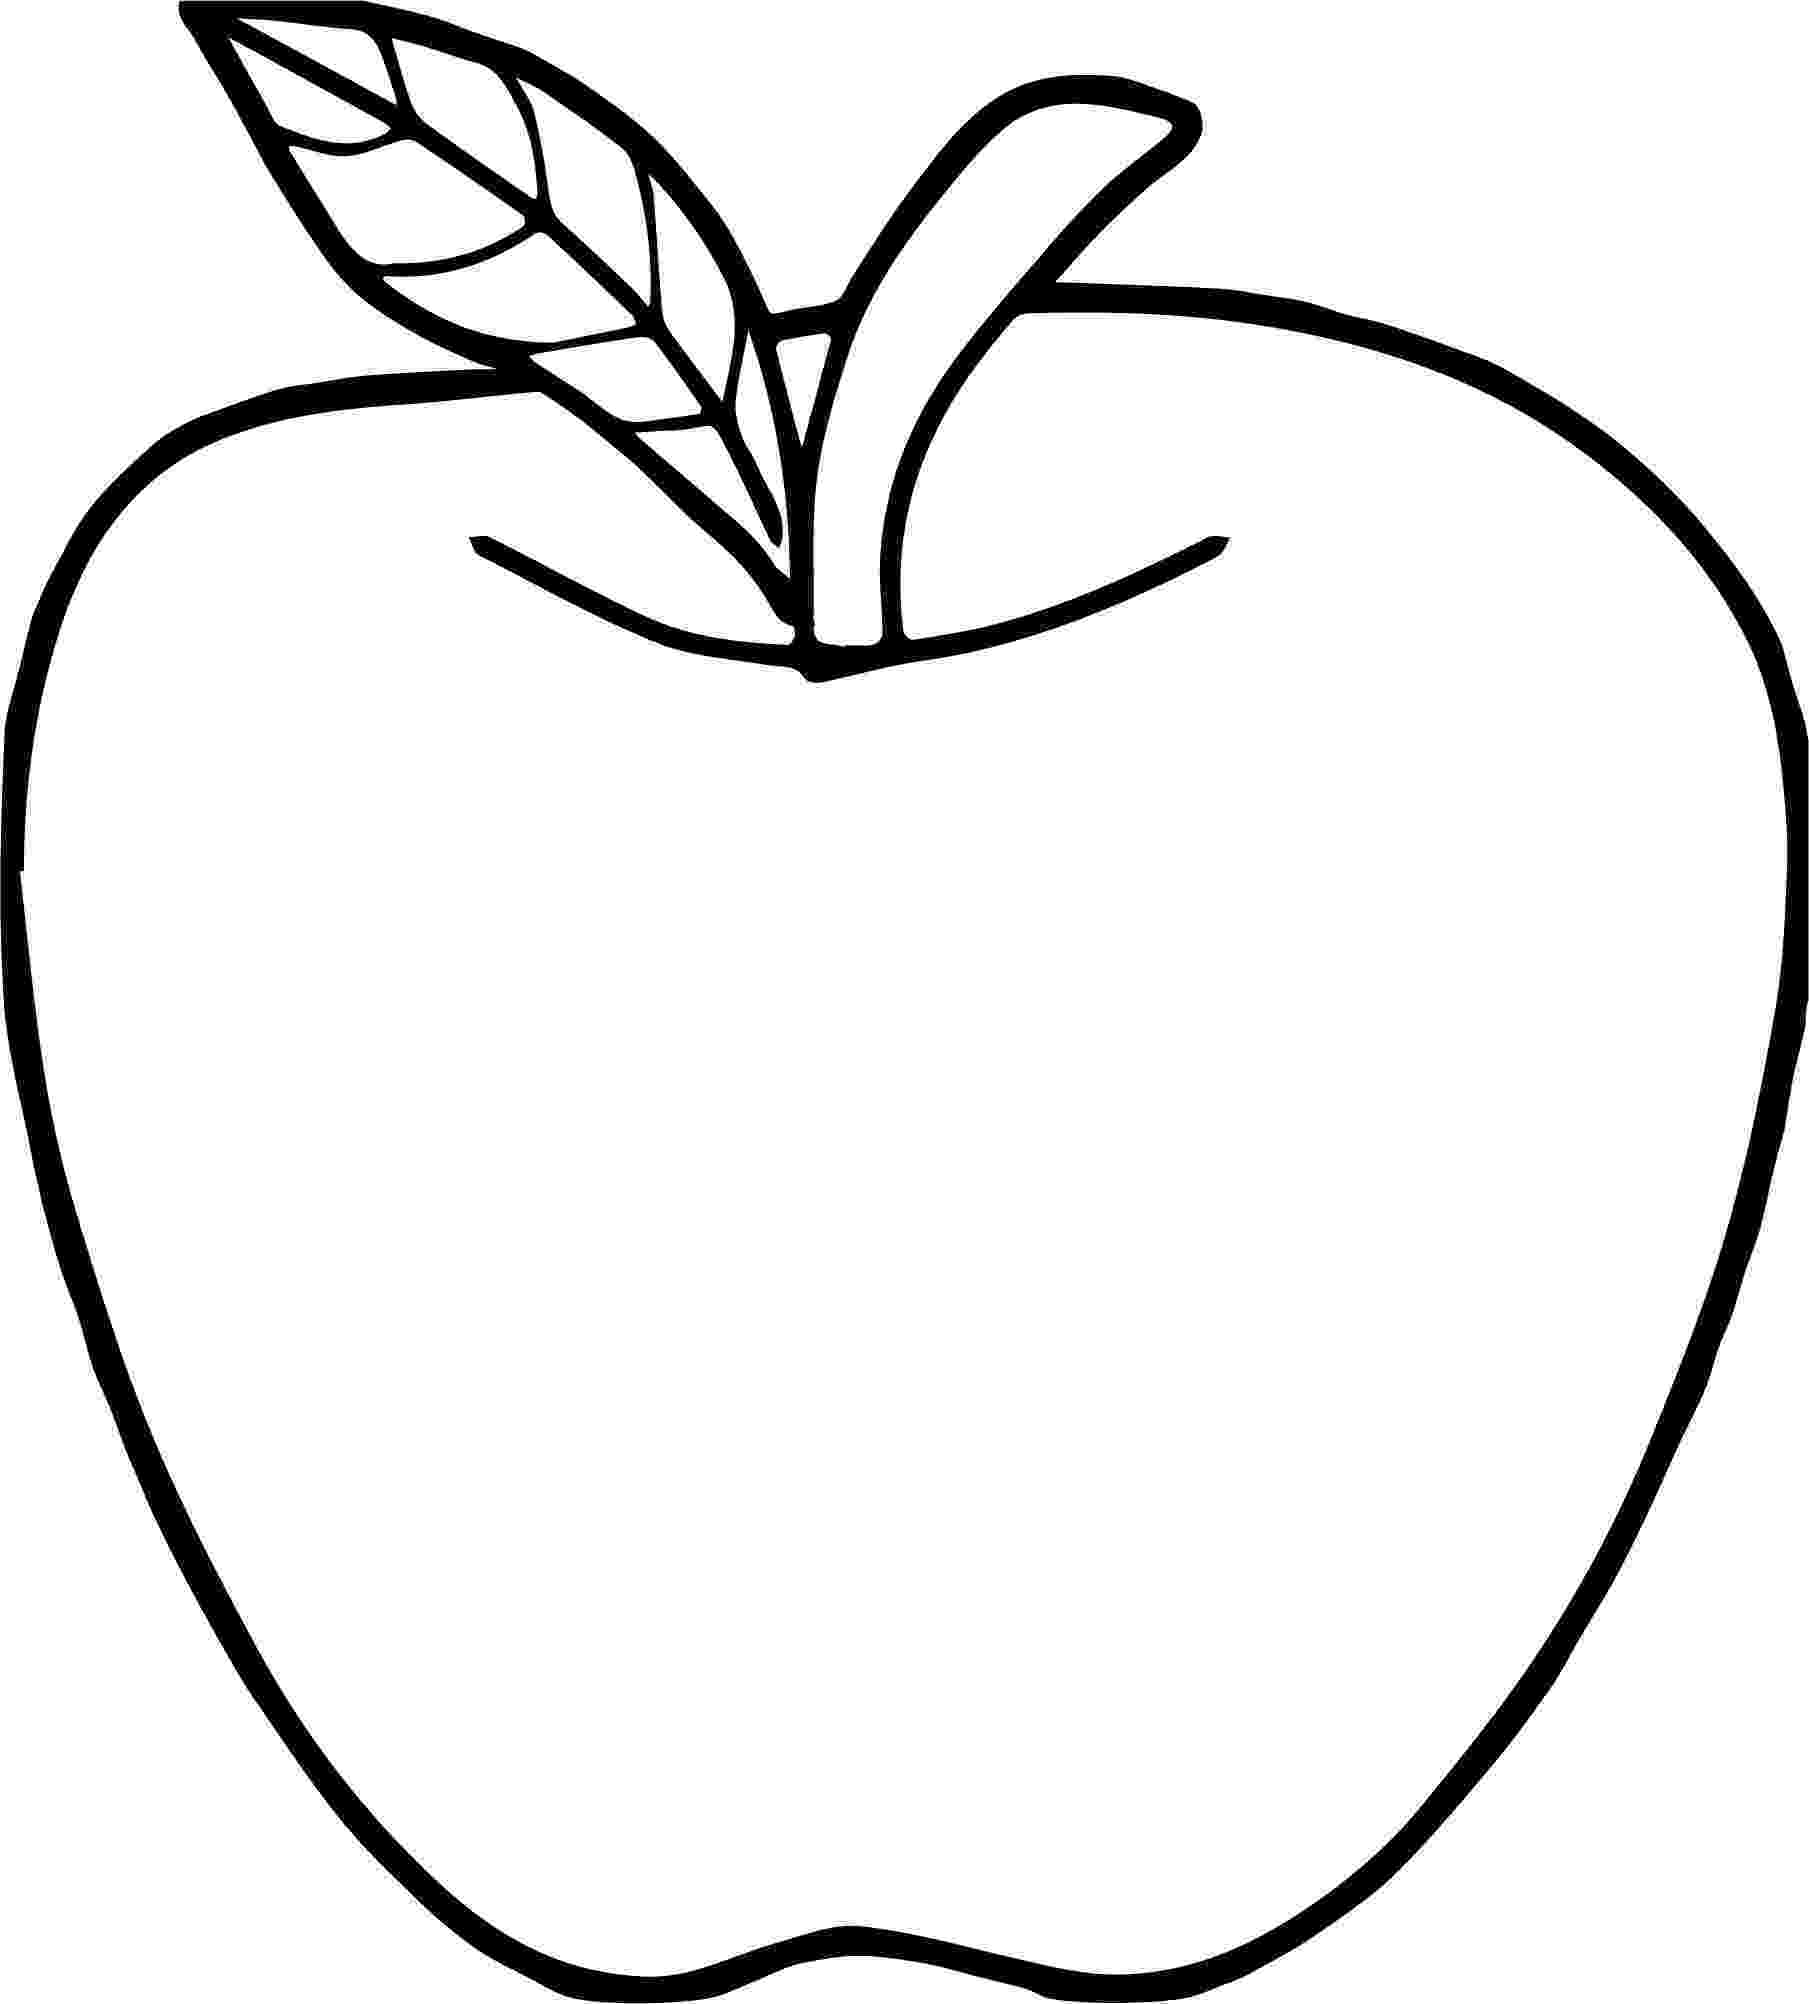 apple coloring apple coloring pages free large images apple coloring coloring apple